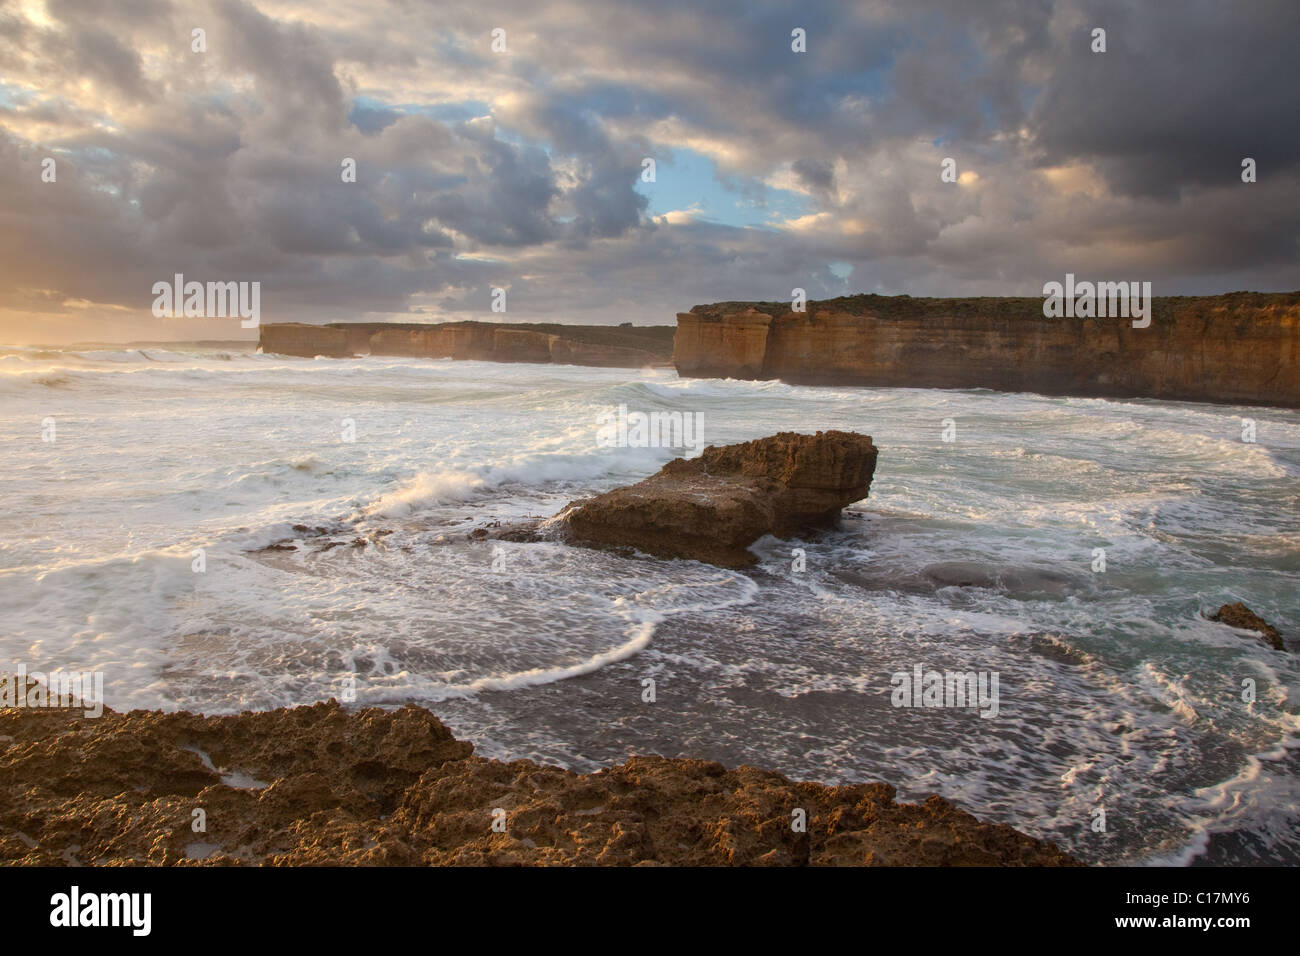 Loch Ard Gorge area, Port Campbell National Park, along the Great Ocean Road, Victoria, Australia Stock Photo